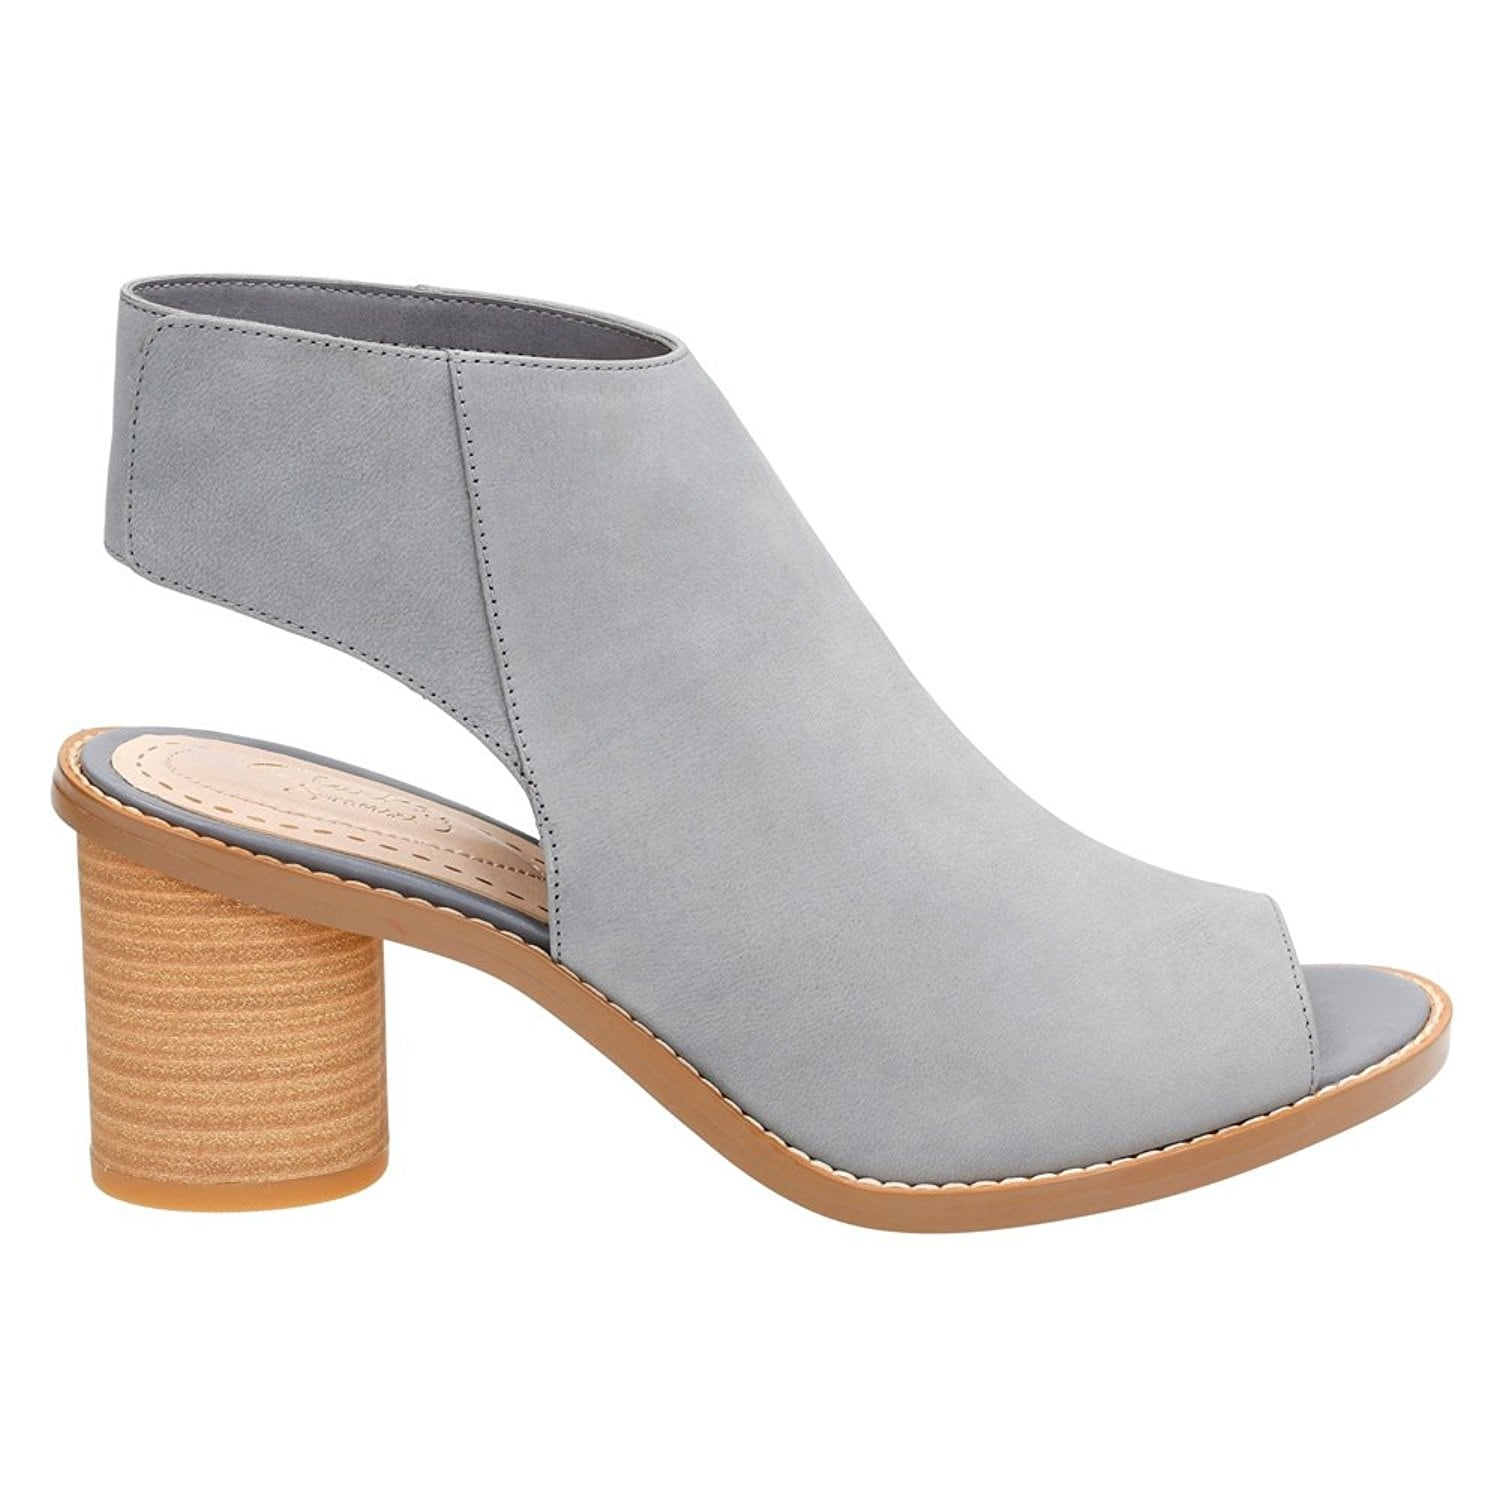 e7ff05516 CLARKS Womens Glacier Charm Leather Open Toe Ankle Fashion Boots Fashion  Boots